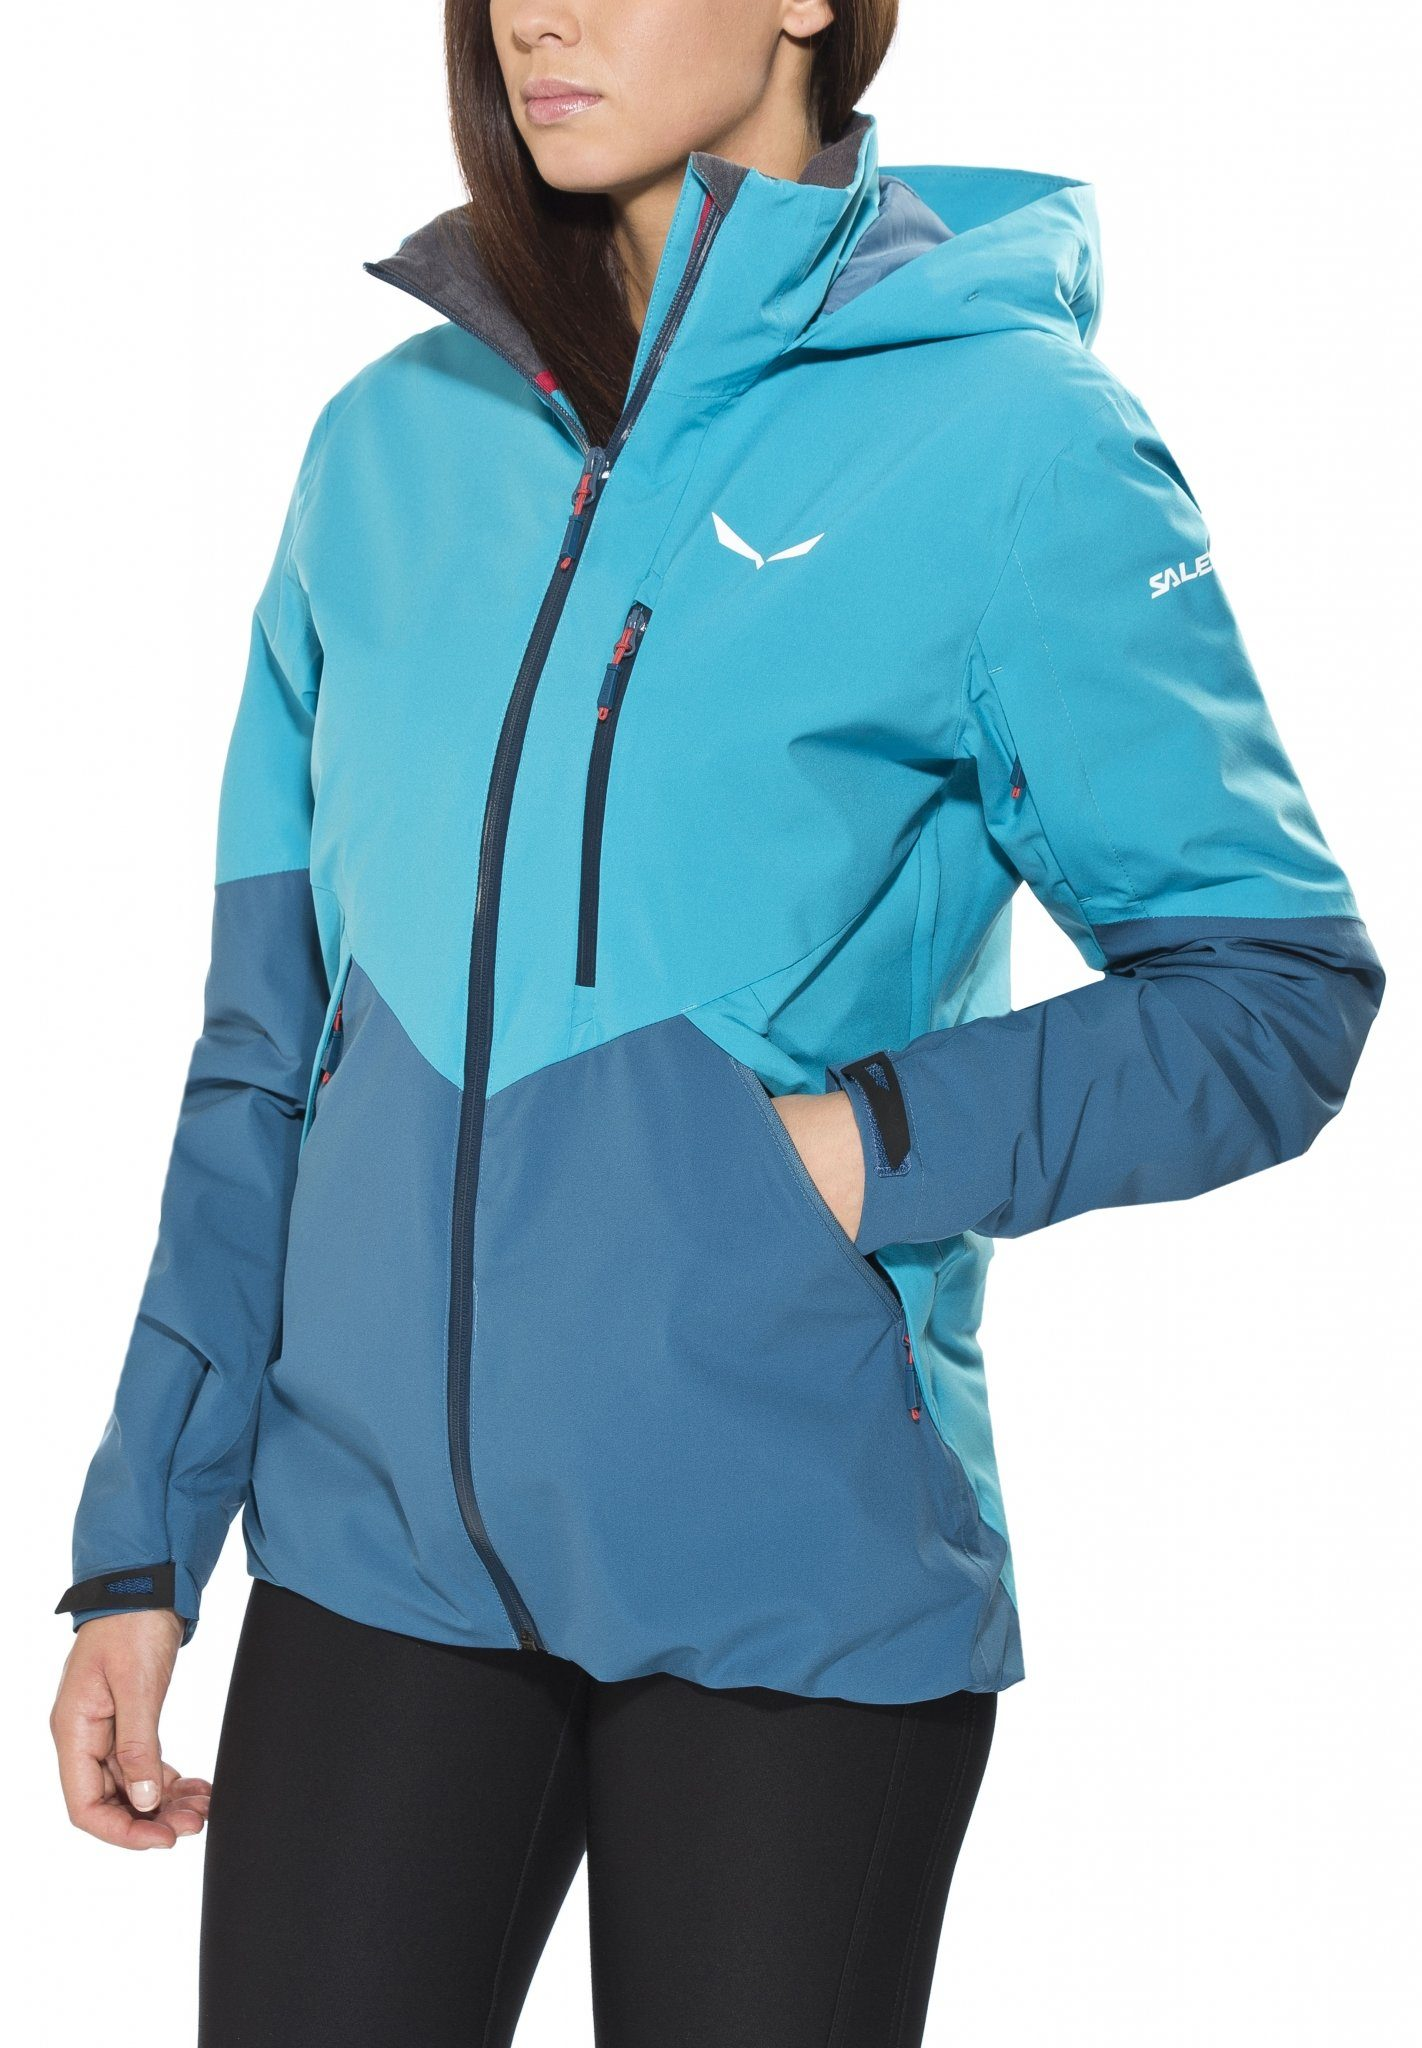 Salewa Outdoorjacke »Antelao Beltovo PTX/PRL Jacket Women«